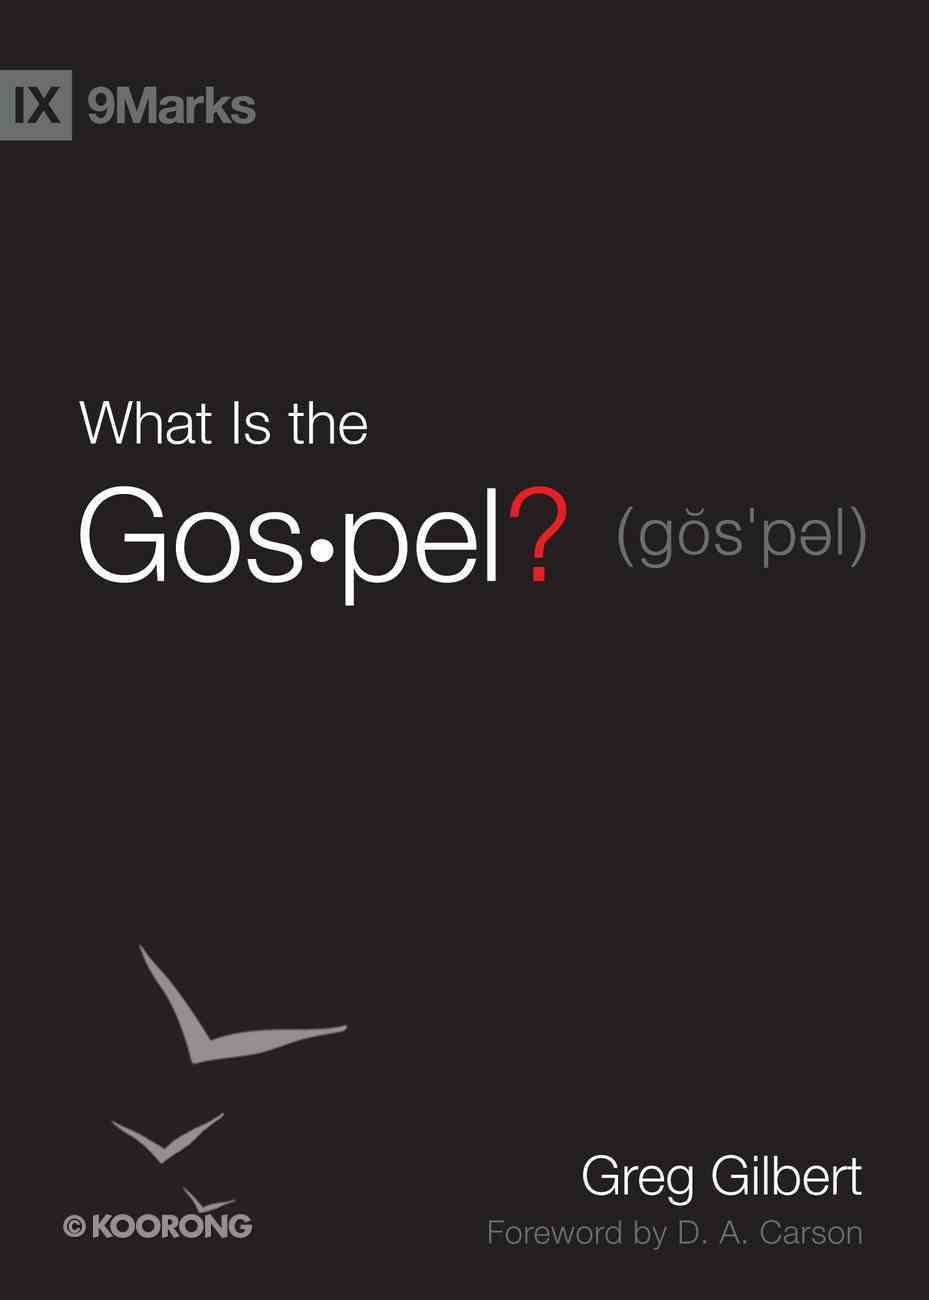 What is the Gospel? (9marks Series) eBook